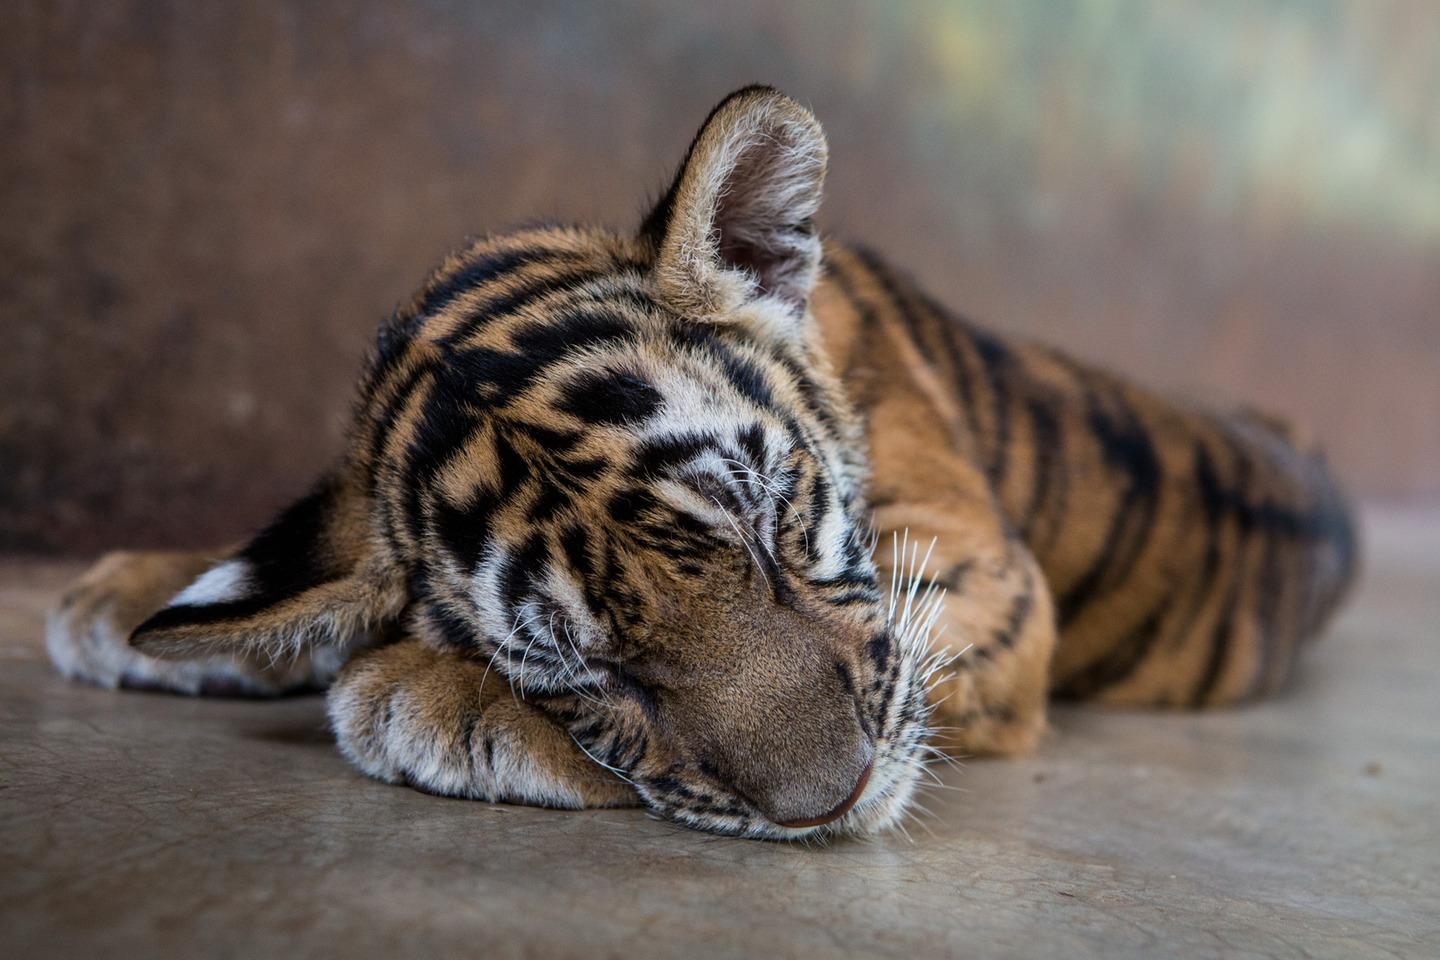 RT @mashable: Thailand's tiger cub tourism is both helping and hurting animal conservation http://t.co/3lSwzNCWwE http://t.co/qDEQvzcNGR